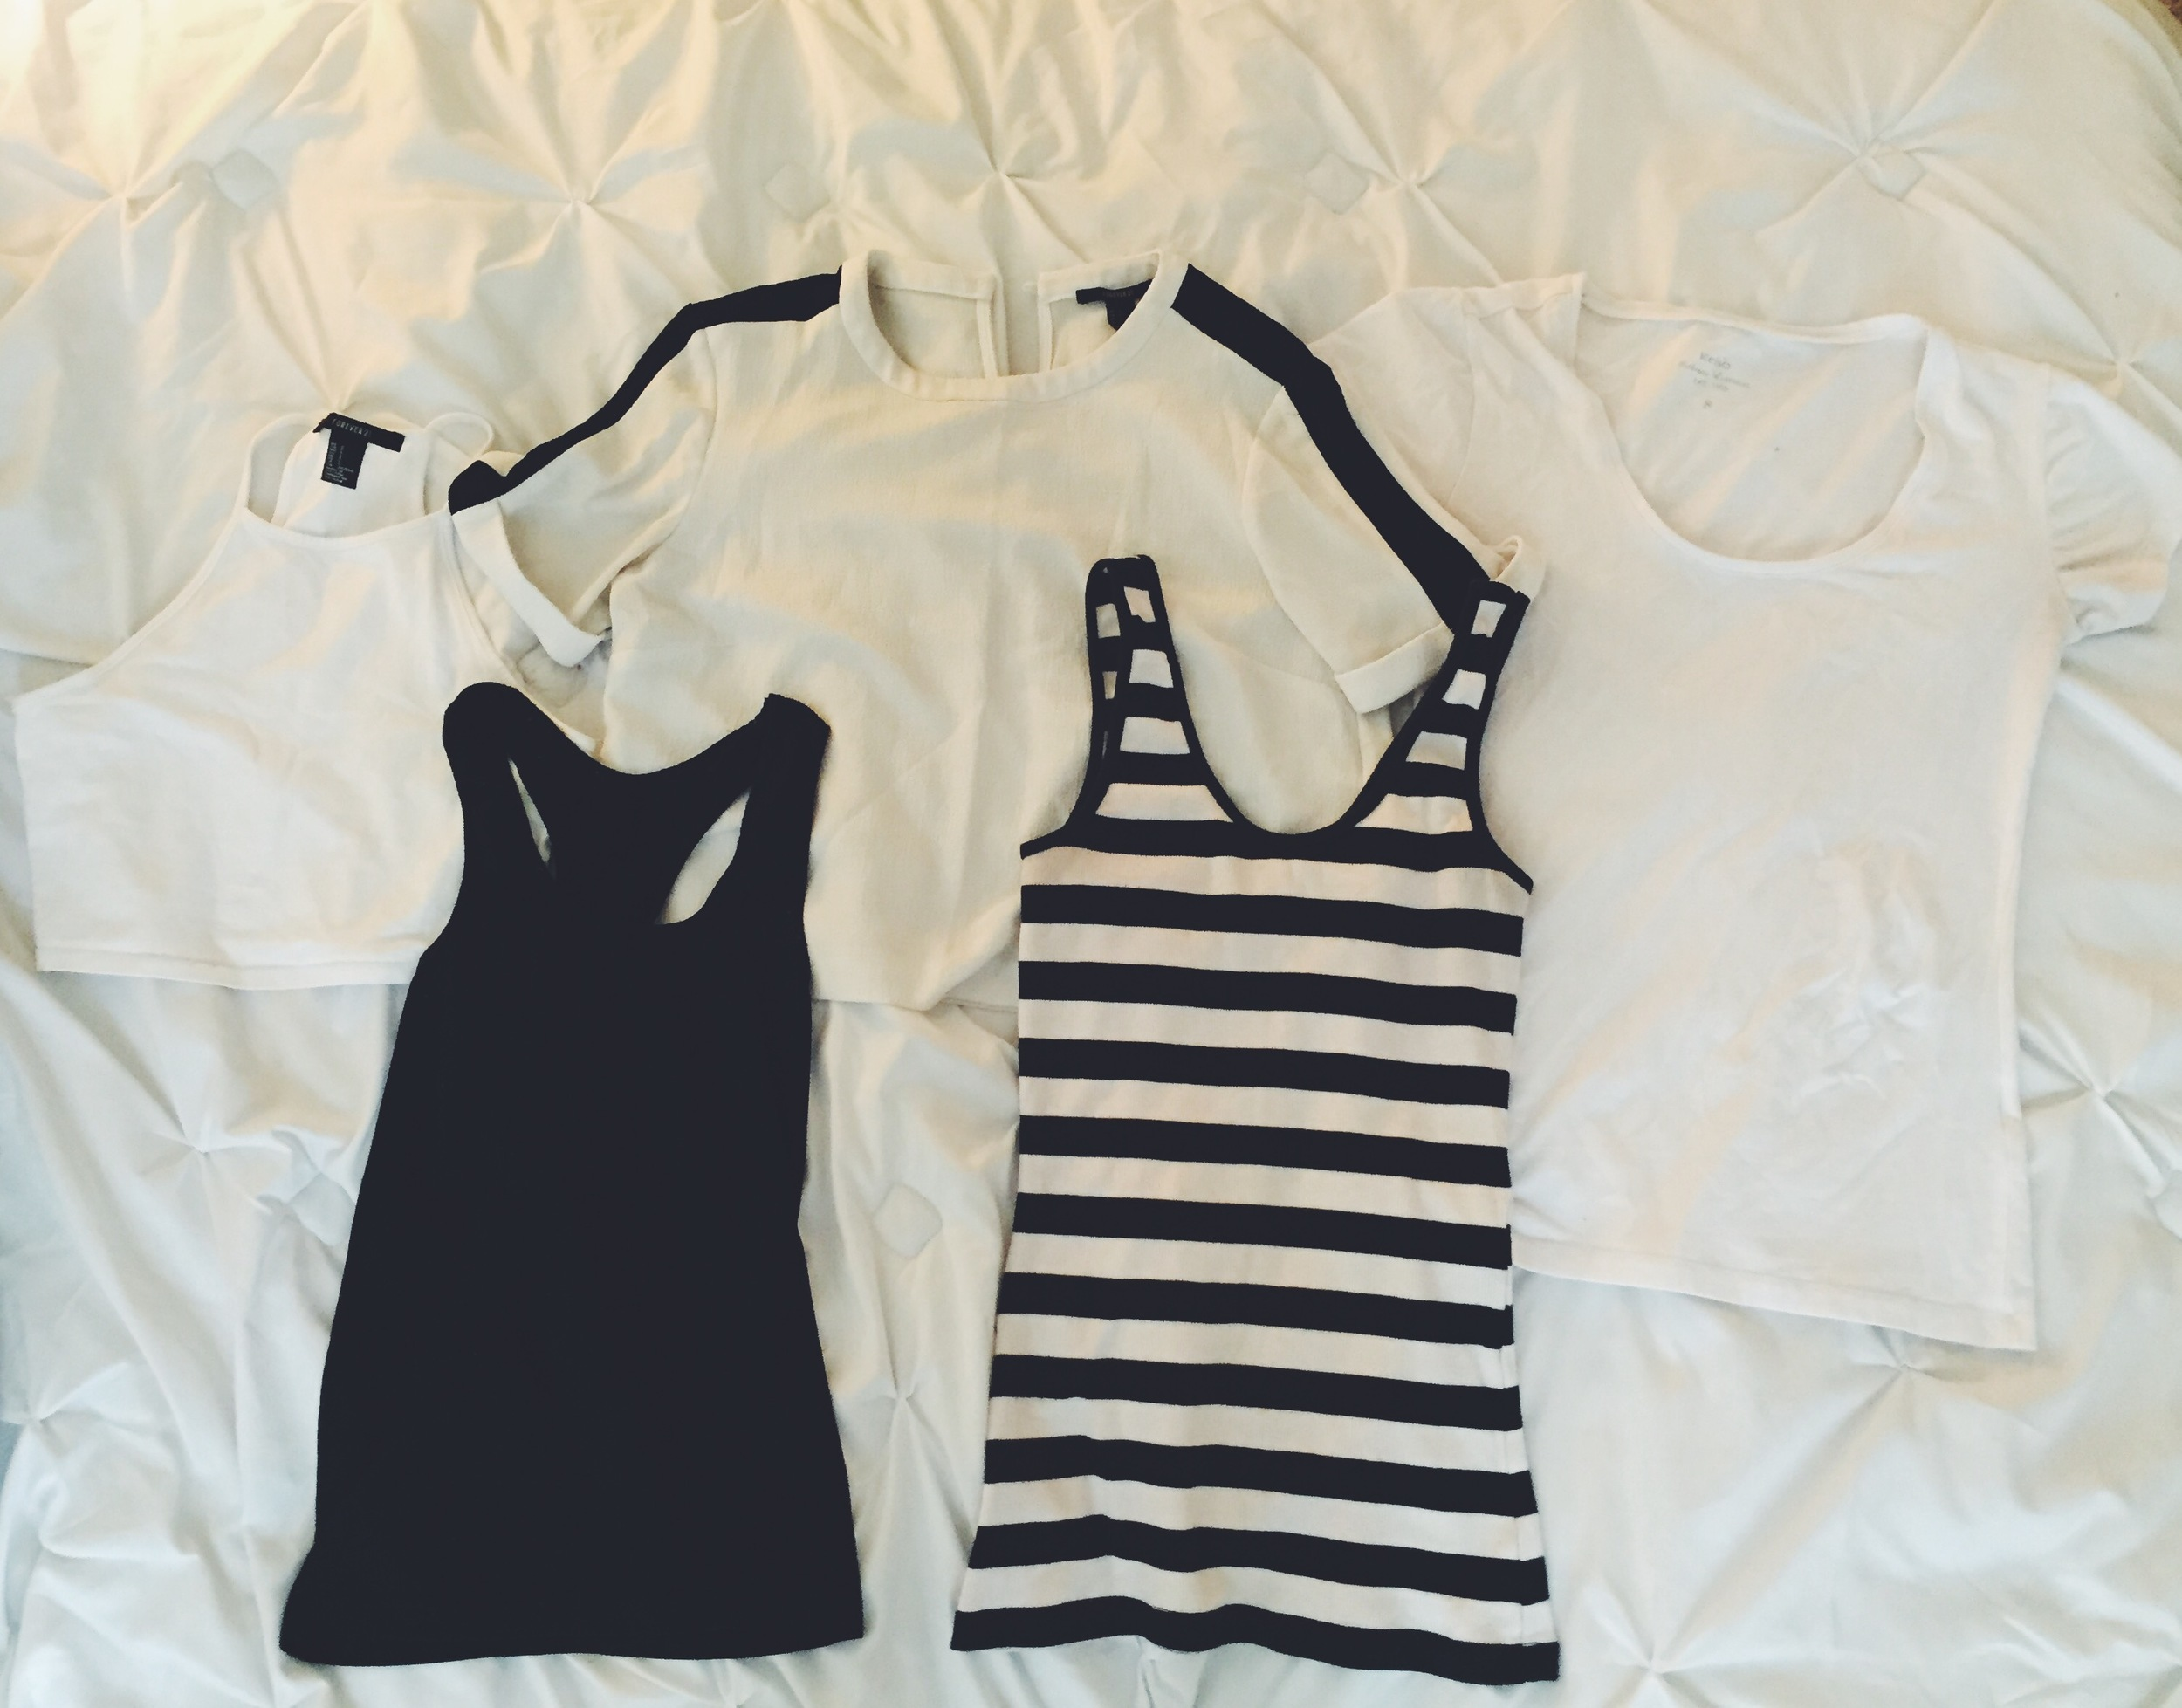 Summer Tops with Black & White Color Scheme